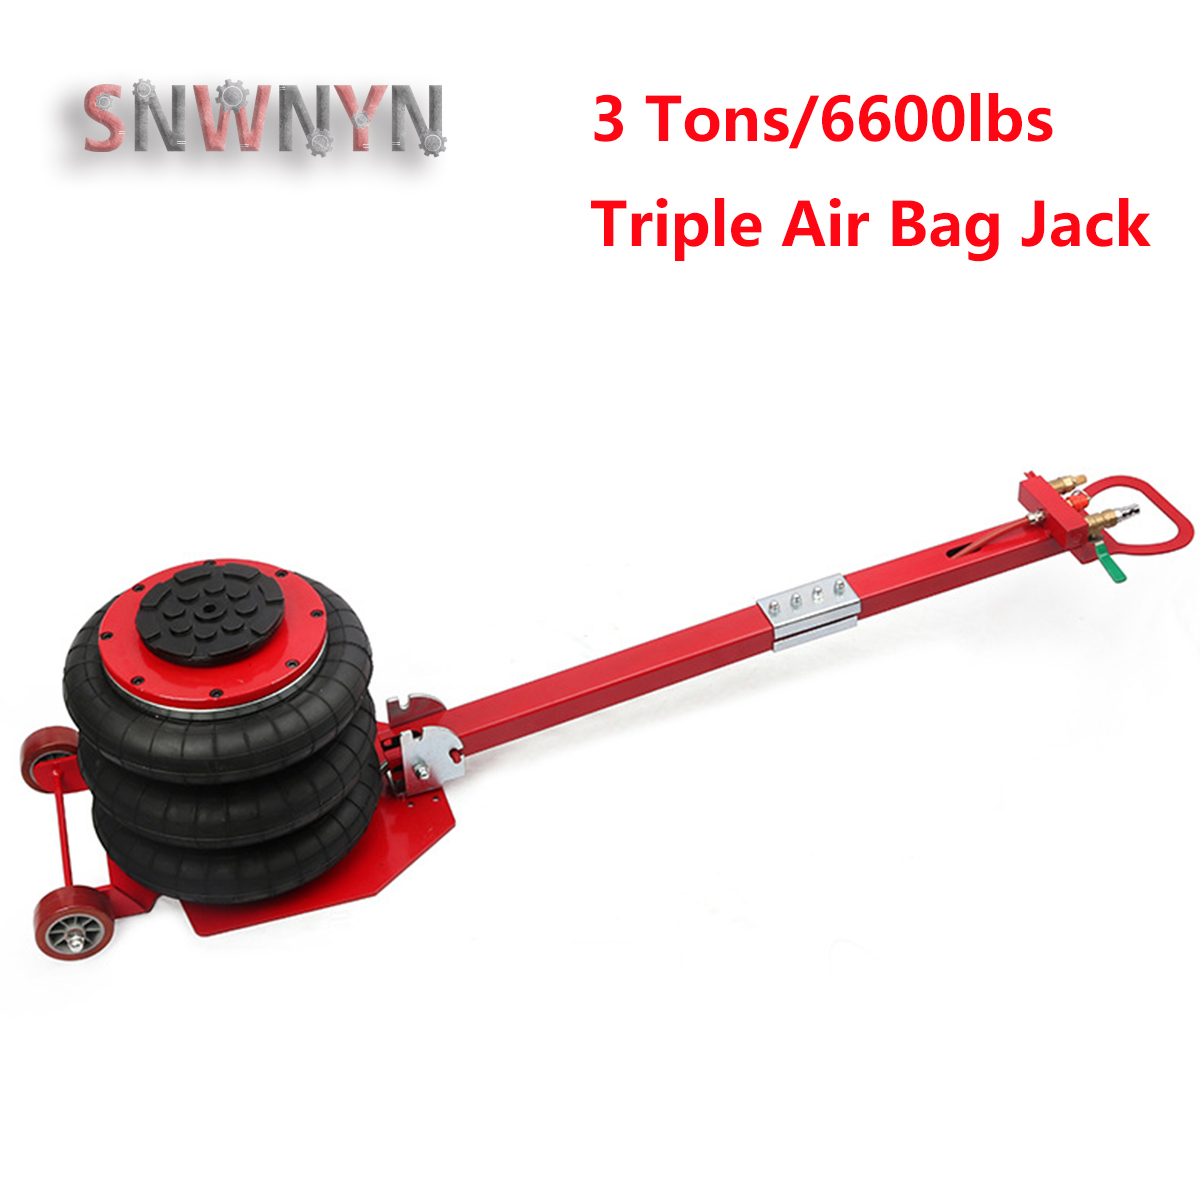 New Arrival 3 Tons/6600lbs Folding Triple Air Bag Jack Pneumatic Car Jack Stand Automotive Lifting Tools Red